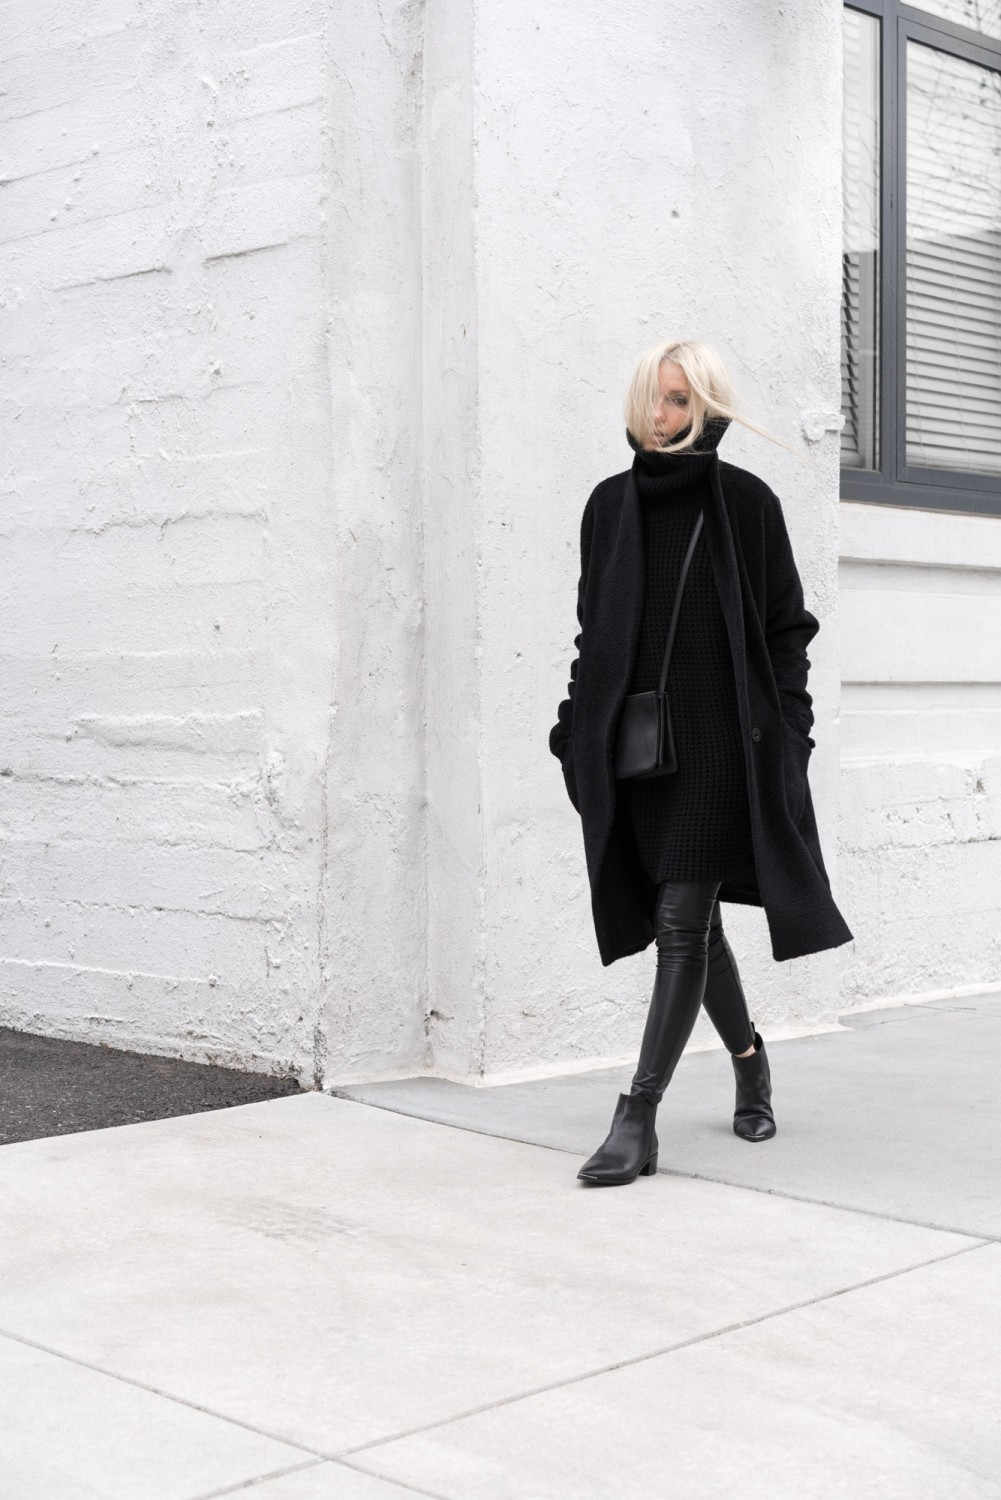 Figtny wears the all black trend in a sleek and sophisticated manner; creating cool, casual vibes with this turtleneck sweater dress and leather leggings combo. Coat: Eileen Fiser, Sweater: Hope Grand, Leggings: Aritzia, Boots: Acne, Bag: Celine.